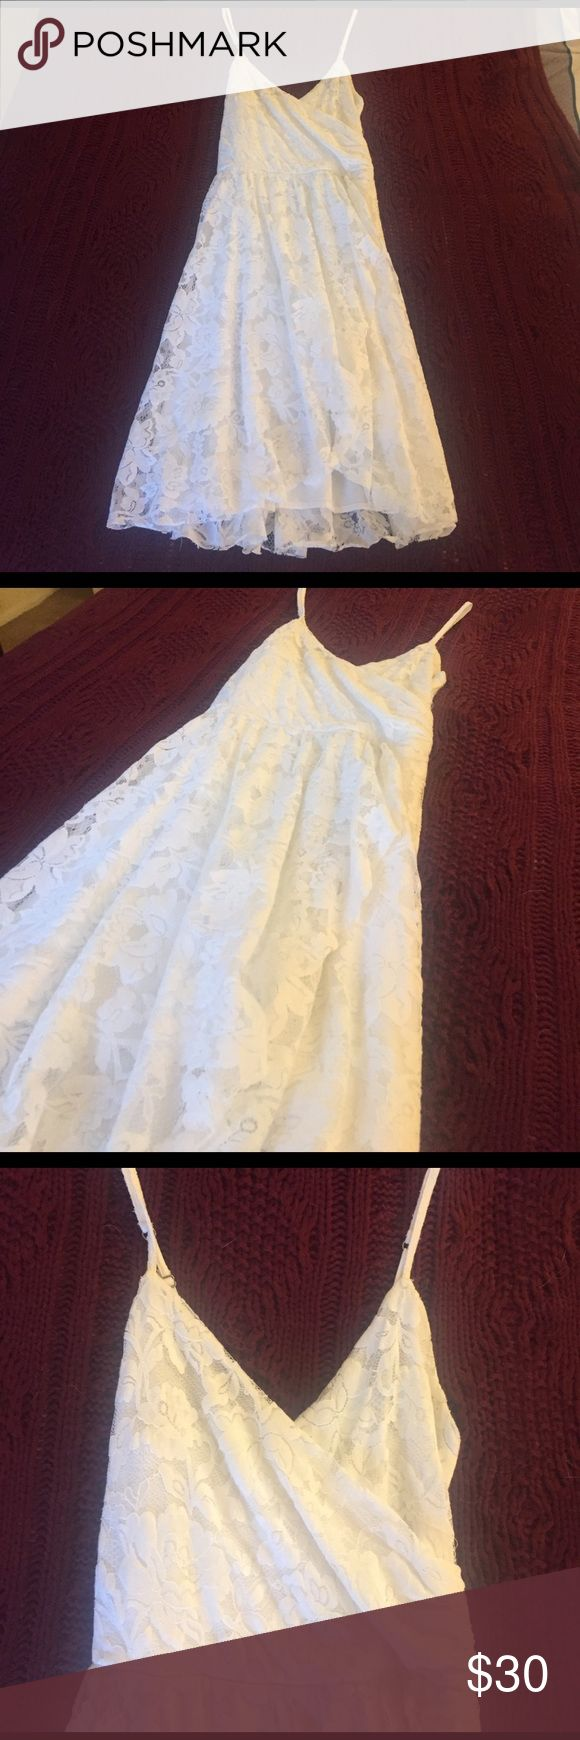 White lace Abercrombie Dress White lace Abercrombie & Fitch Dress Abercrombie & Fitch Dresses